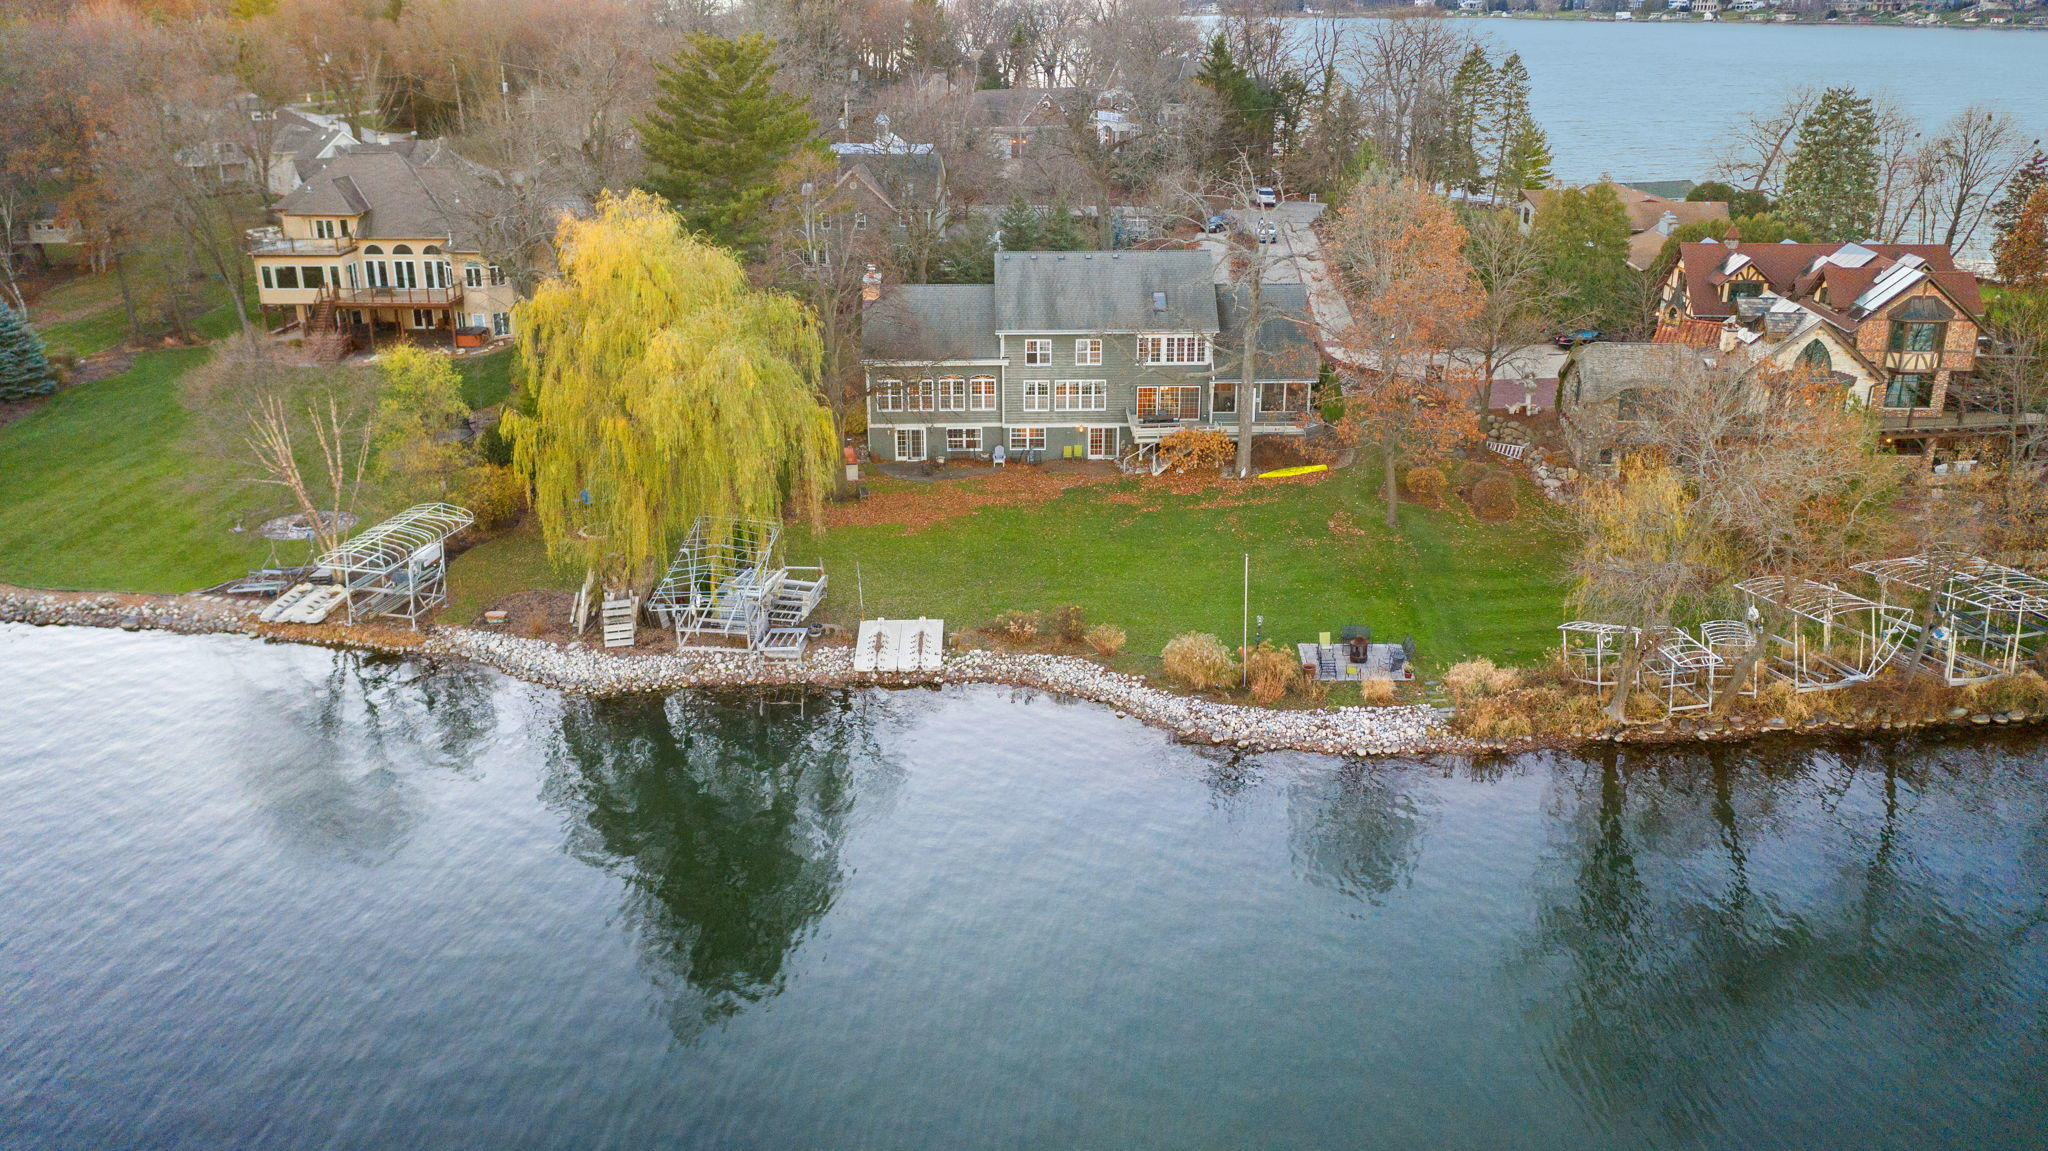 W277N3016 Rocky Point Rd, Pewaukee, Wisconsin 53072, 4 Bedrooms Bedrooms, 12 Rooms Rooms,4 BathroomsBathrooms,Single-Family,For Sale,Rocky Point Rd,1719014